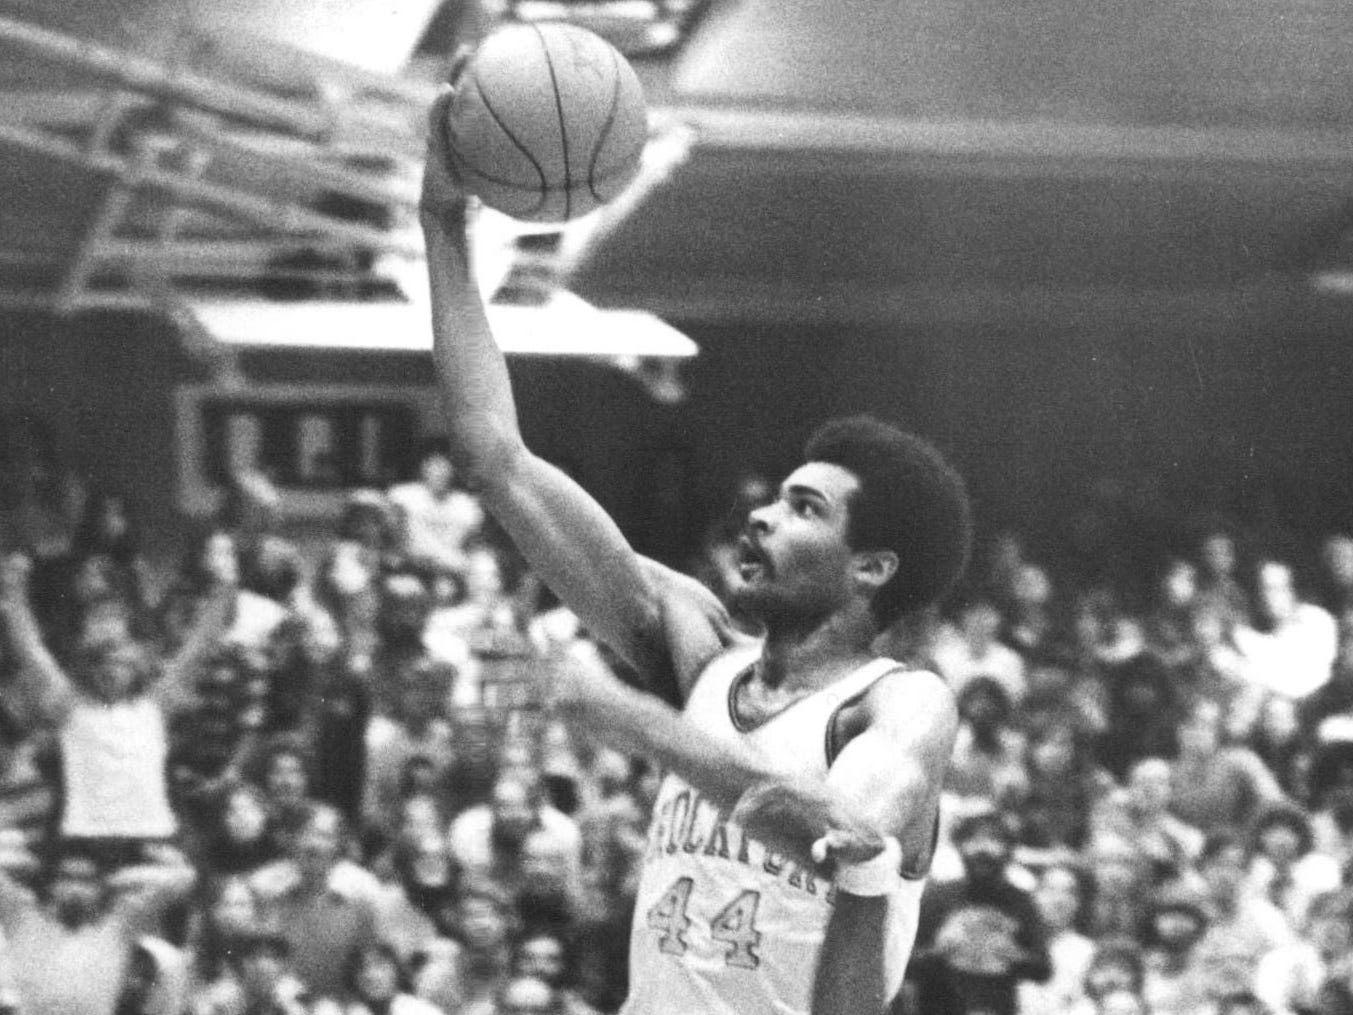 Monroe 'Pops' McTaw, 67, was city basketball legend, a 'gentle giant'